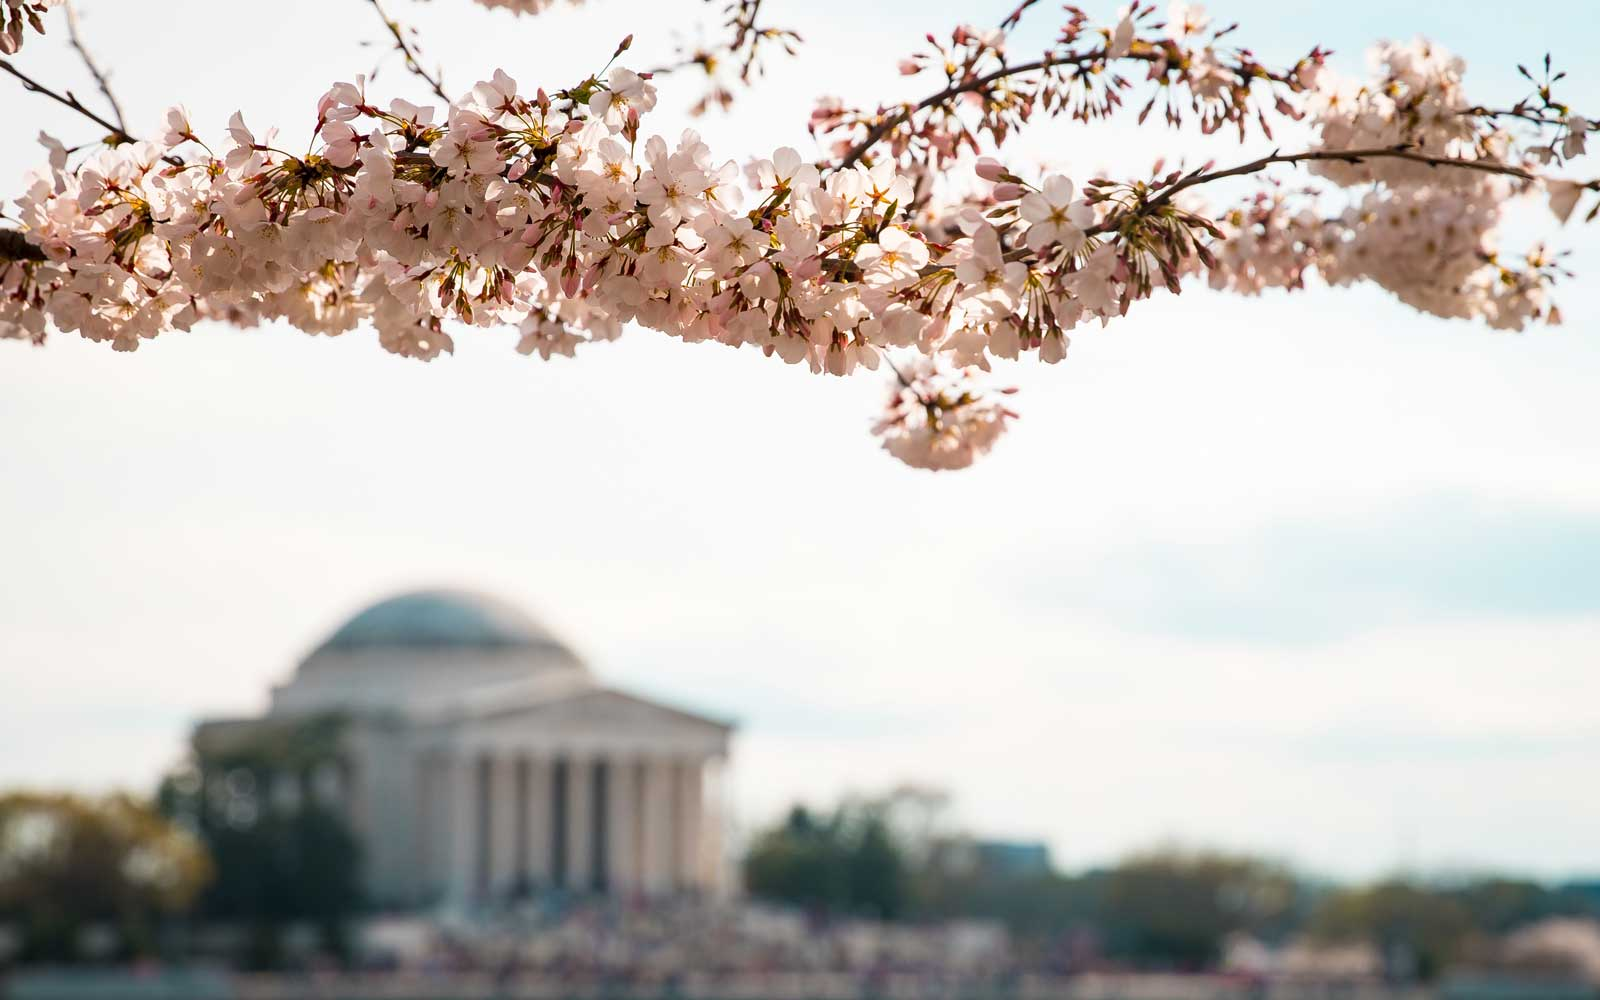 Cherry Blossom Trees in Washington, D.C. Bloom Weeks Early